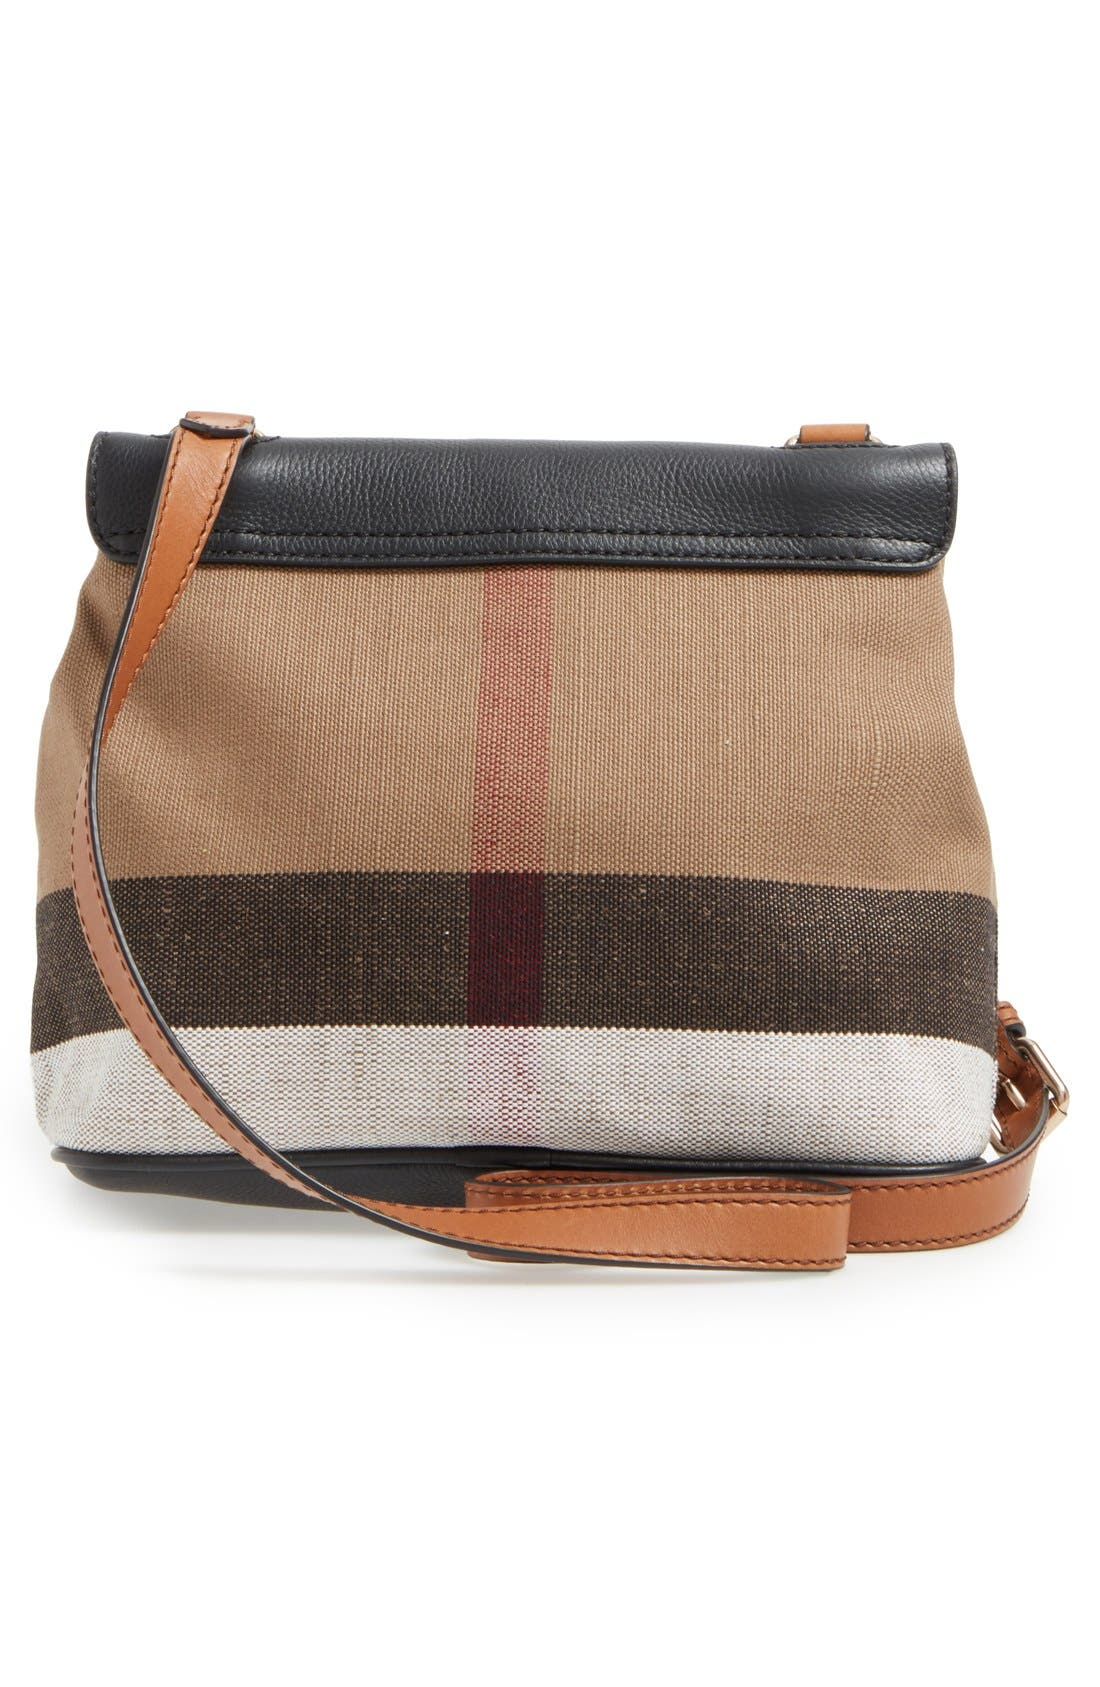 Alternate Image 3  - Burberry 'Small Shellwood' Canvas & Leather Crossbody Bag